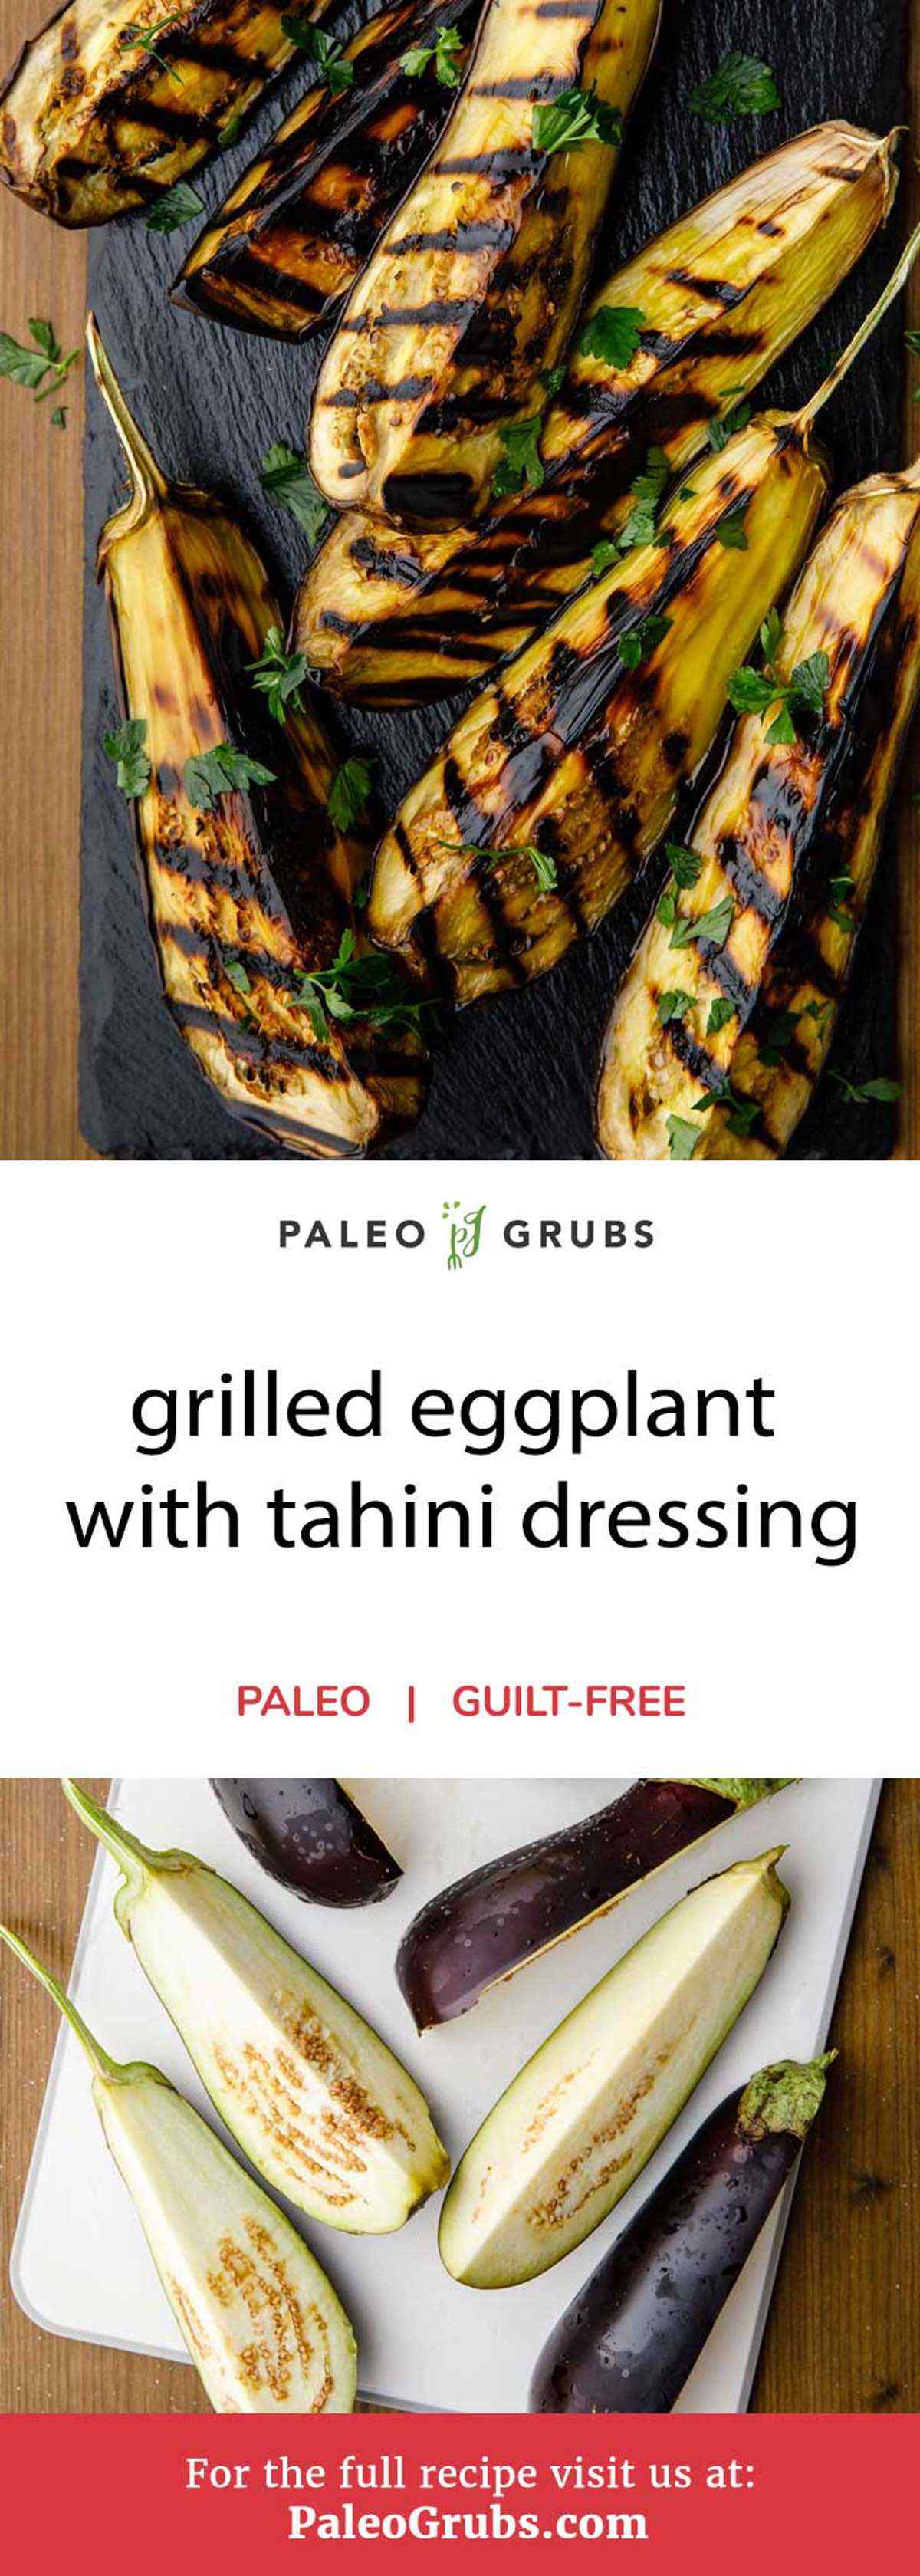 Middle Eastern cuisine is full of wonderfully healthy meals that are loaded with flavors, and this grilled eggplant with tahini dressing recipe is no exception. The dressing is made from scratch using tahini along with several other tasty ingredients like lemon juice, sesame seeds, garlic, and parsley.